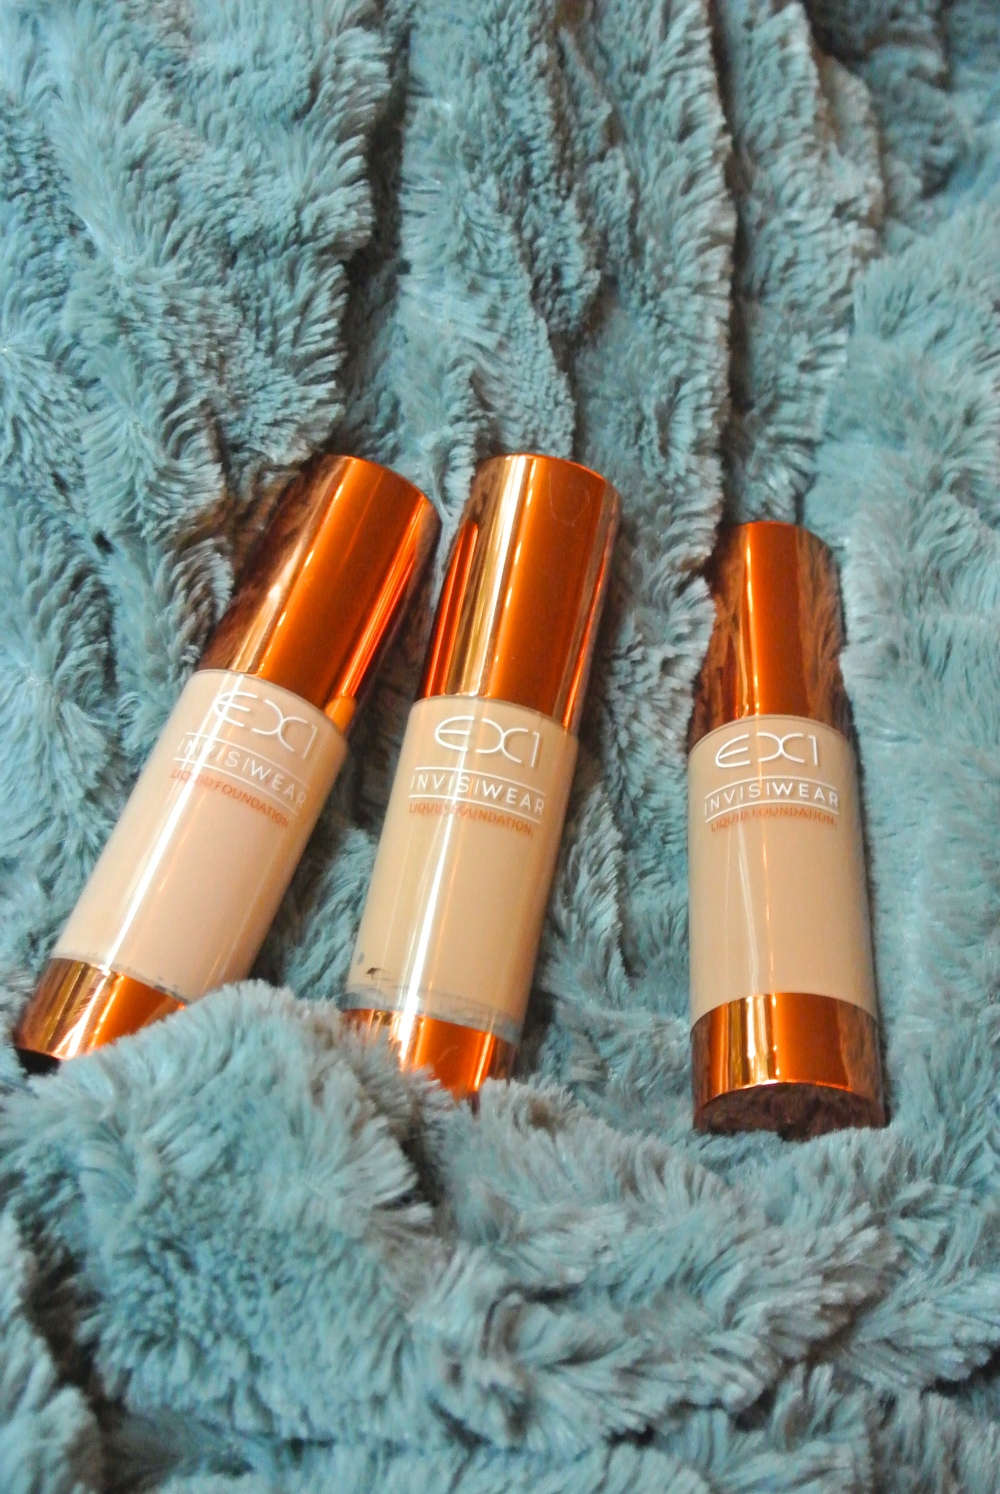 Ex1 Cosmetics Invisiwear Liquid Foundation. L to R: F100, F200, F300